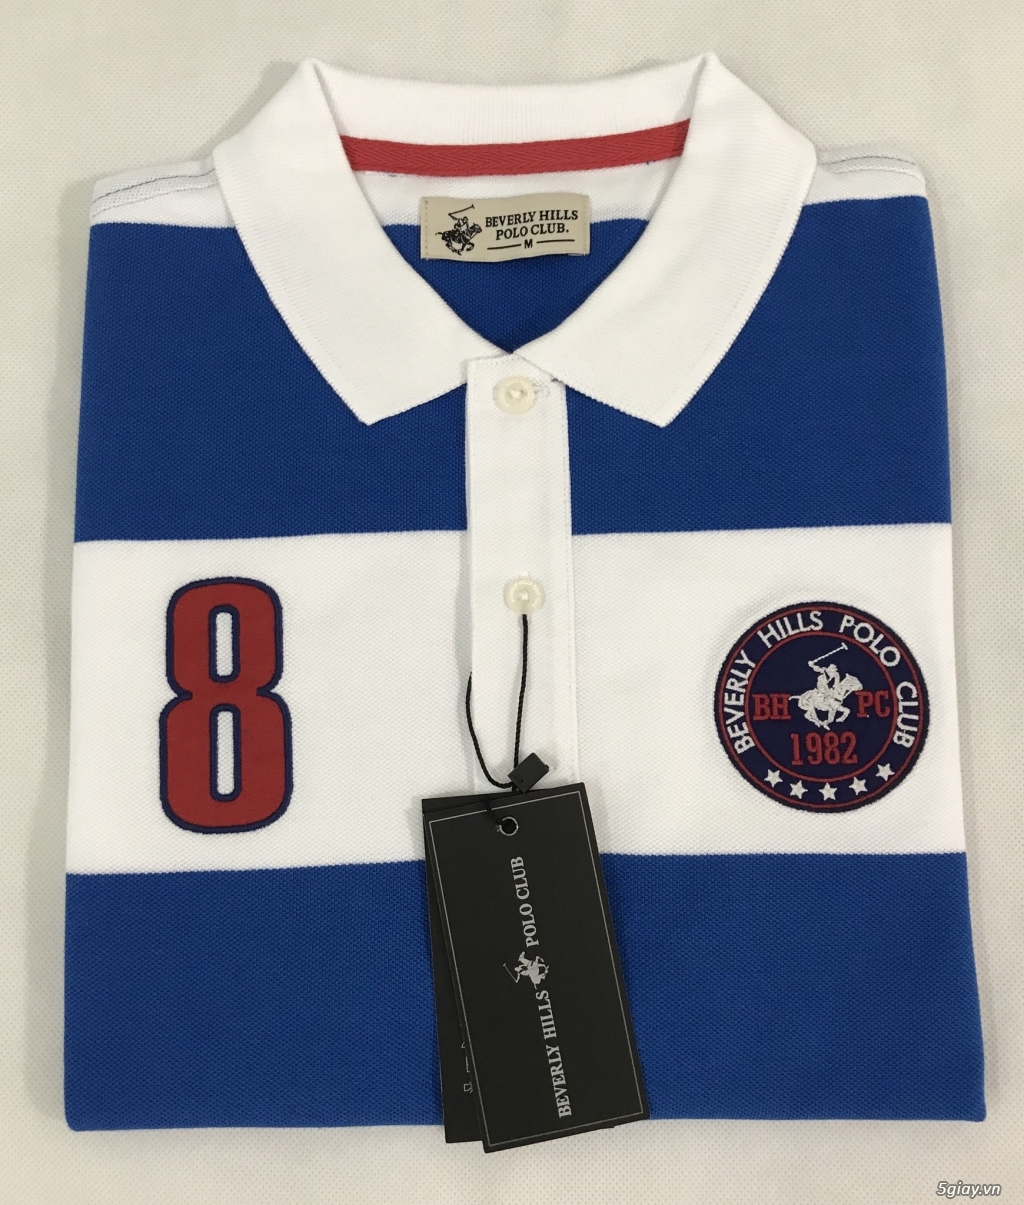 Polo RL,tonny hilfiger,guess,polo club beverly hills ... usa - 5